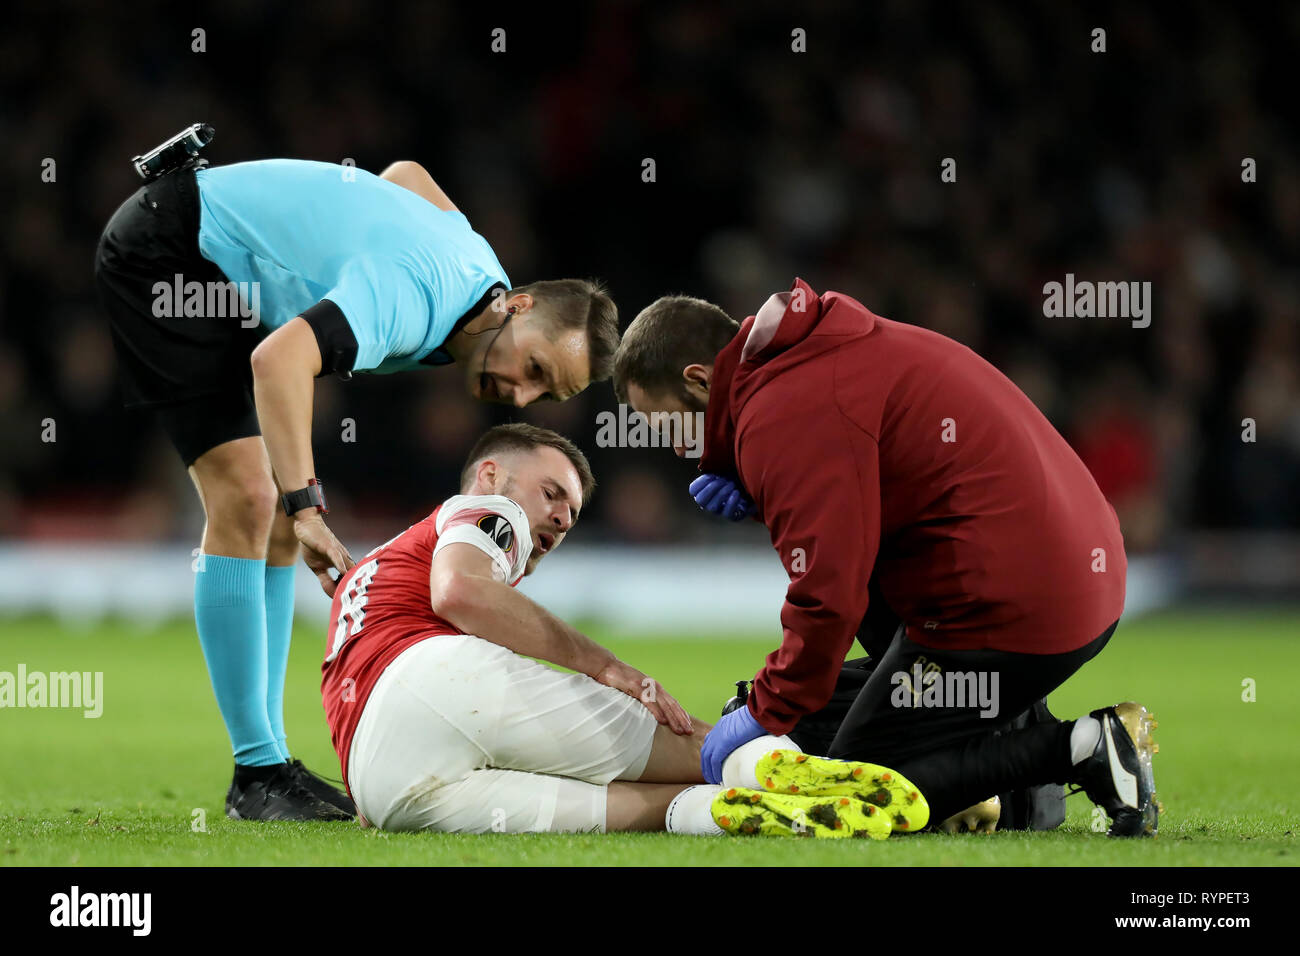 Emirates Stadium, London, UK. 14th Mar, 2019. UEFA Europa League football, round of 16, second leg, Arsenal versus Rennes; Aaron Ramsey of Arsenal goes down injured and receives treatment Credit: Action Plus Sports/Alamy Live News - Stock Image